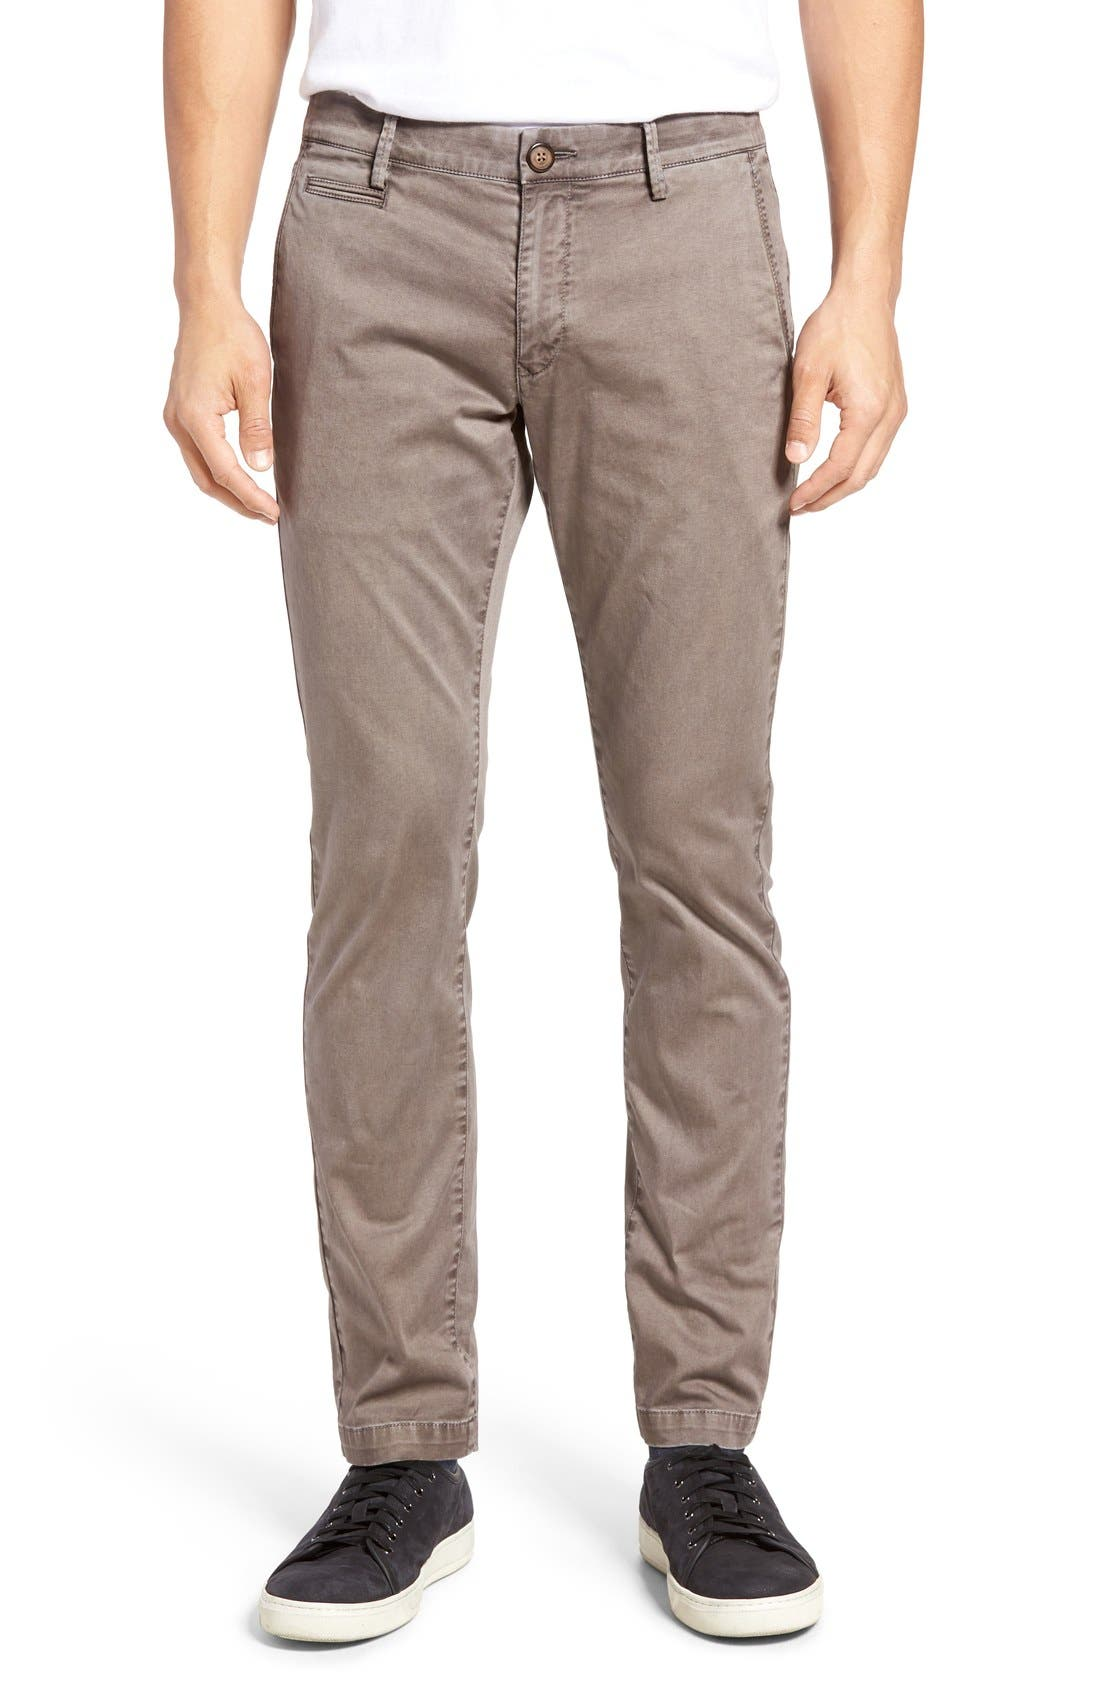 Enzyme Washed Chinos,                             Main thumbnail 1, color,                             020